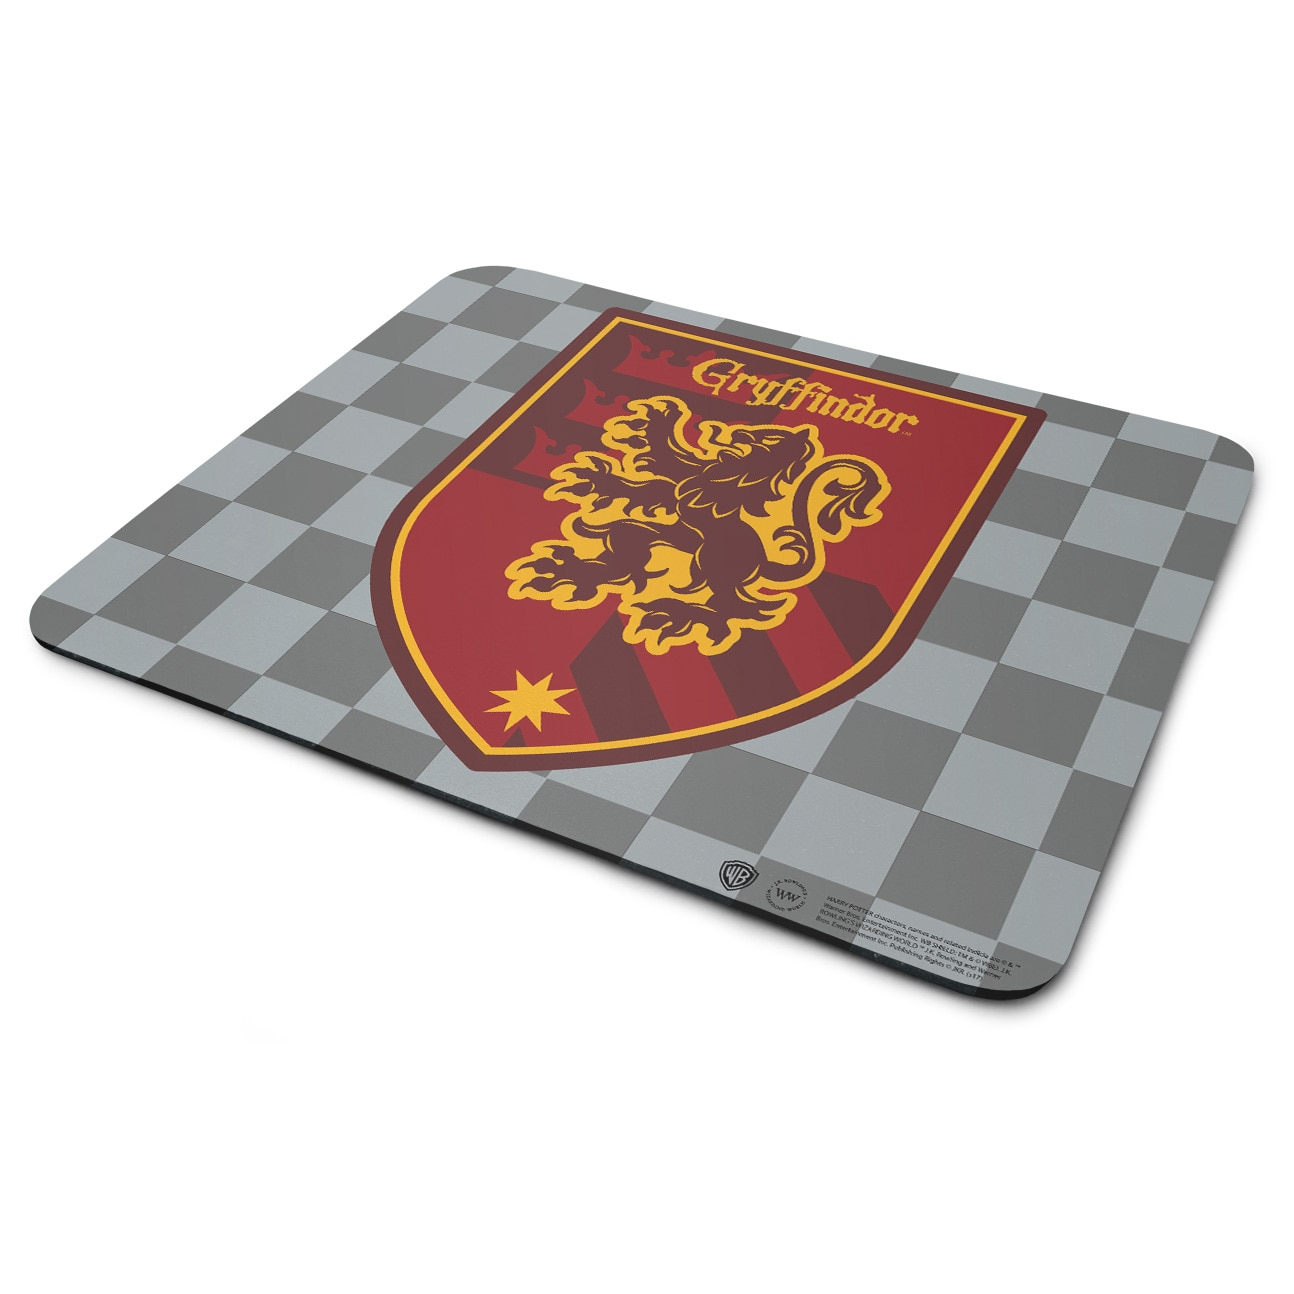 Gryffindor Mouse Pad 3-Pack